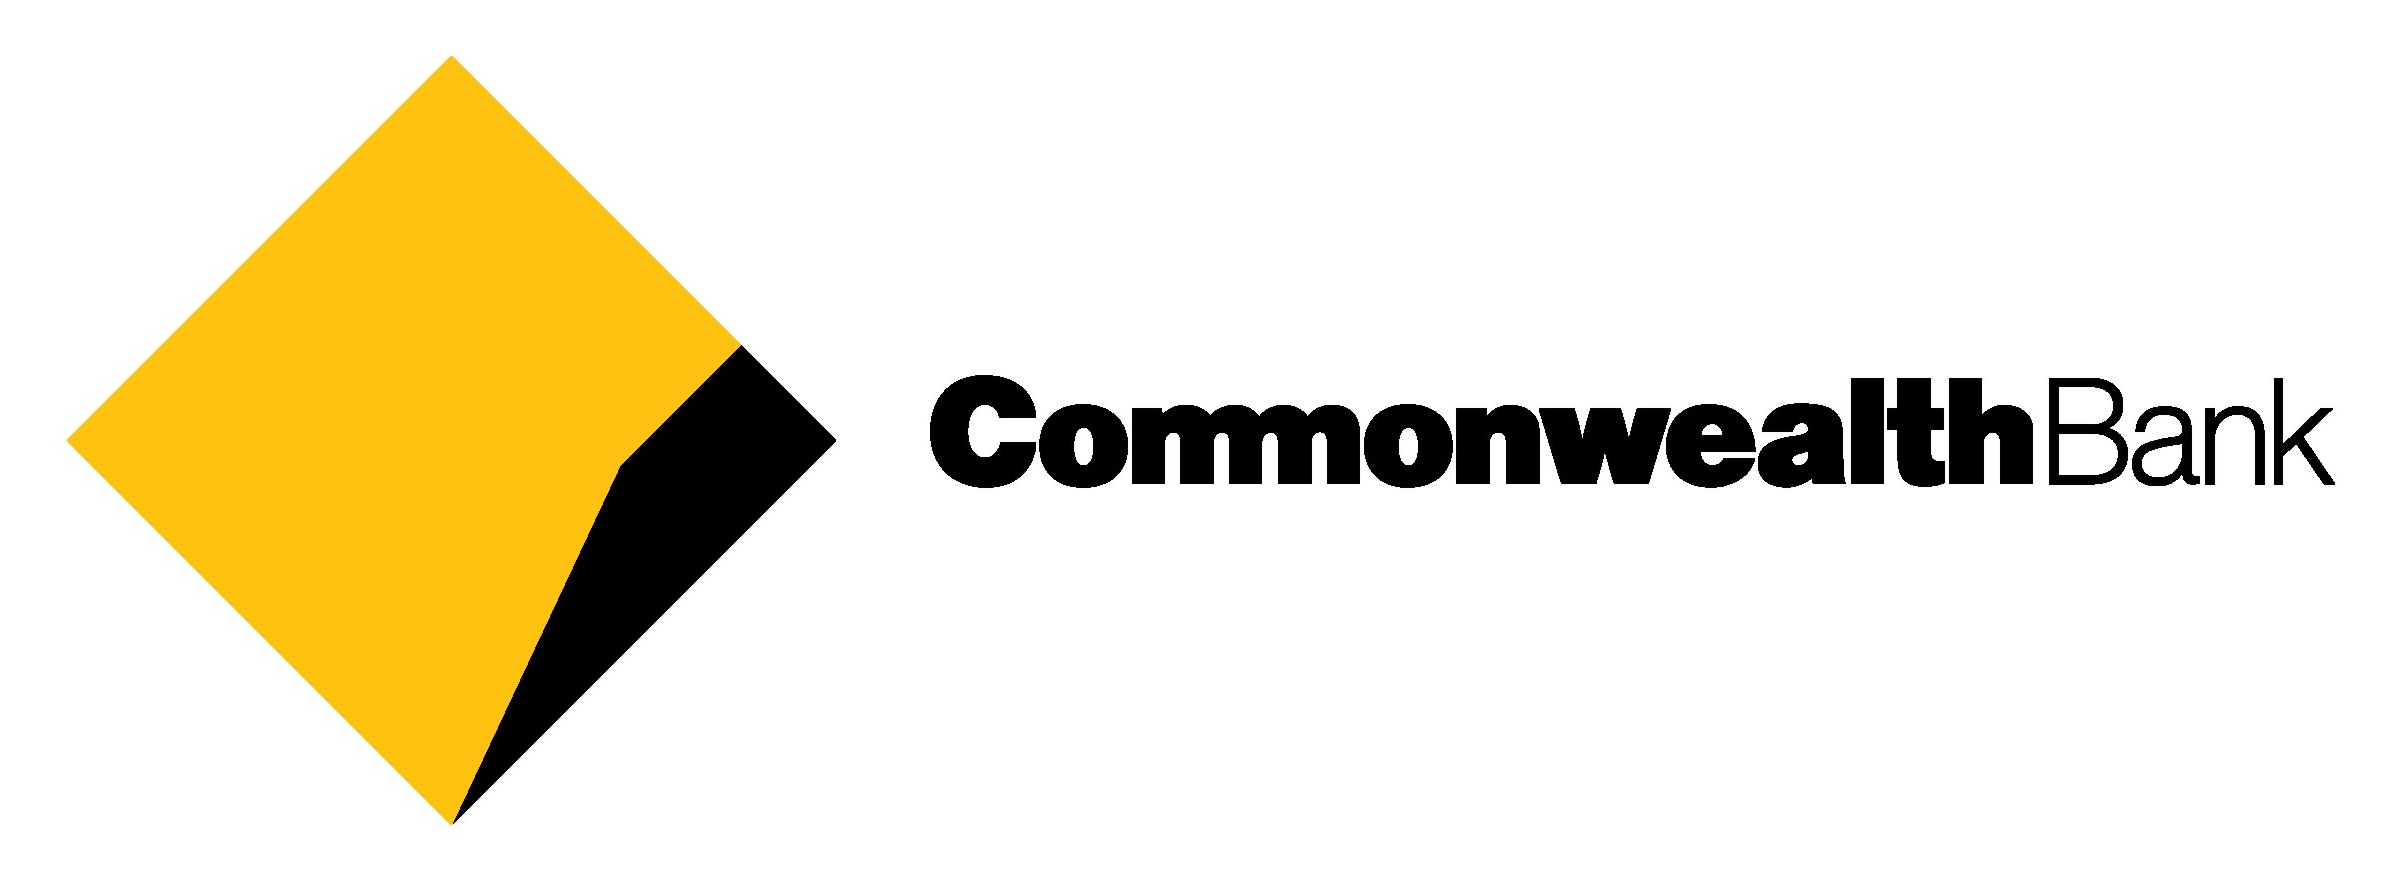 Commonwealth Securities Limited is a limited by shares Australian public company. Located at NSW since the company is, as the updated on ABN database shows, registered.